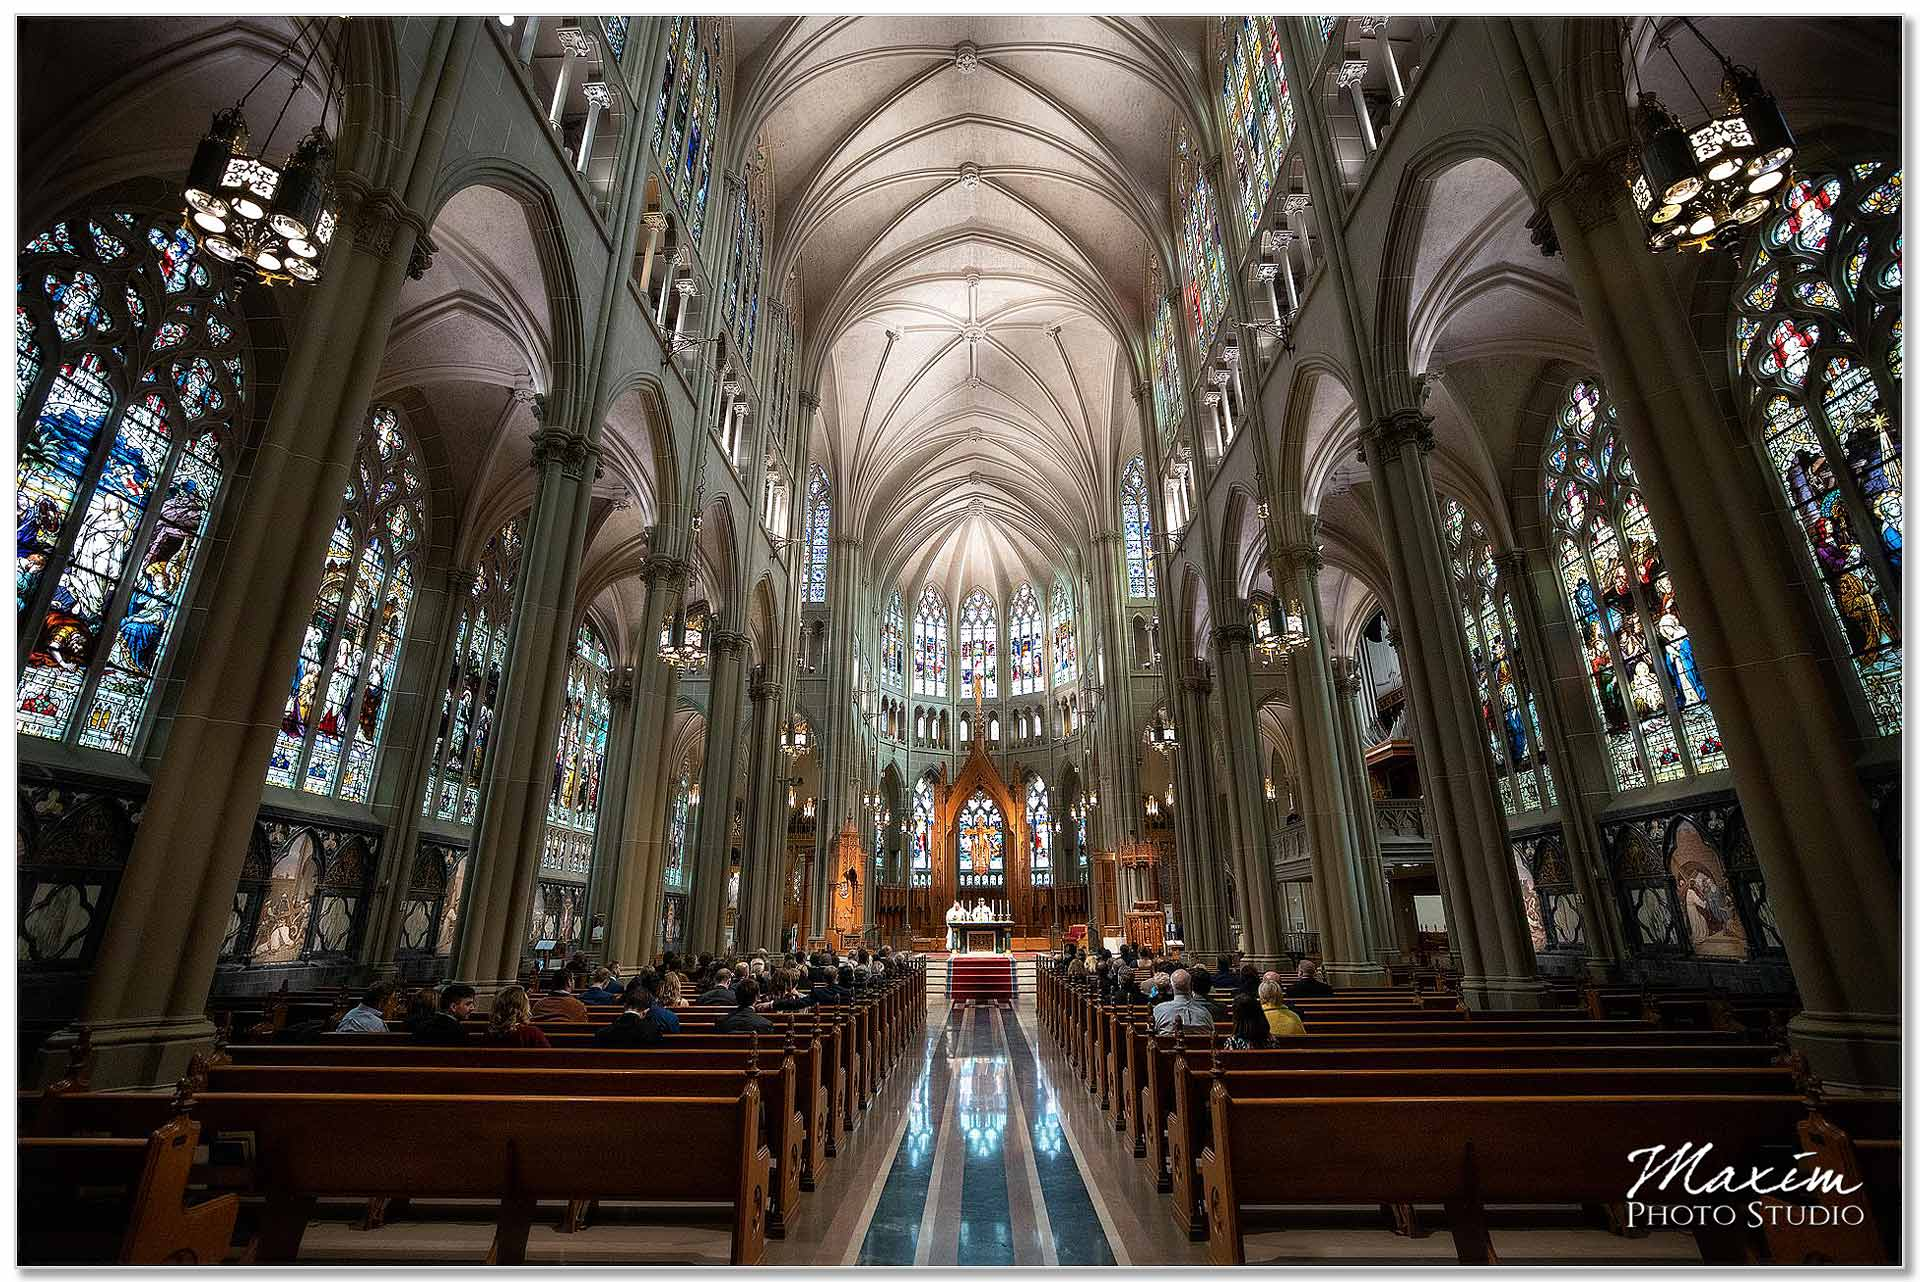 Inside Catholic Basilica of Assumption Covington Kentucky